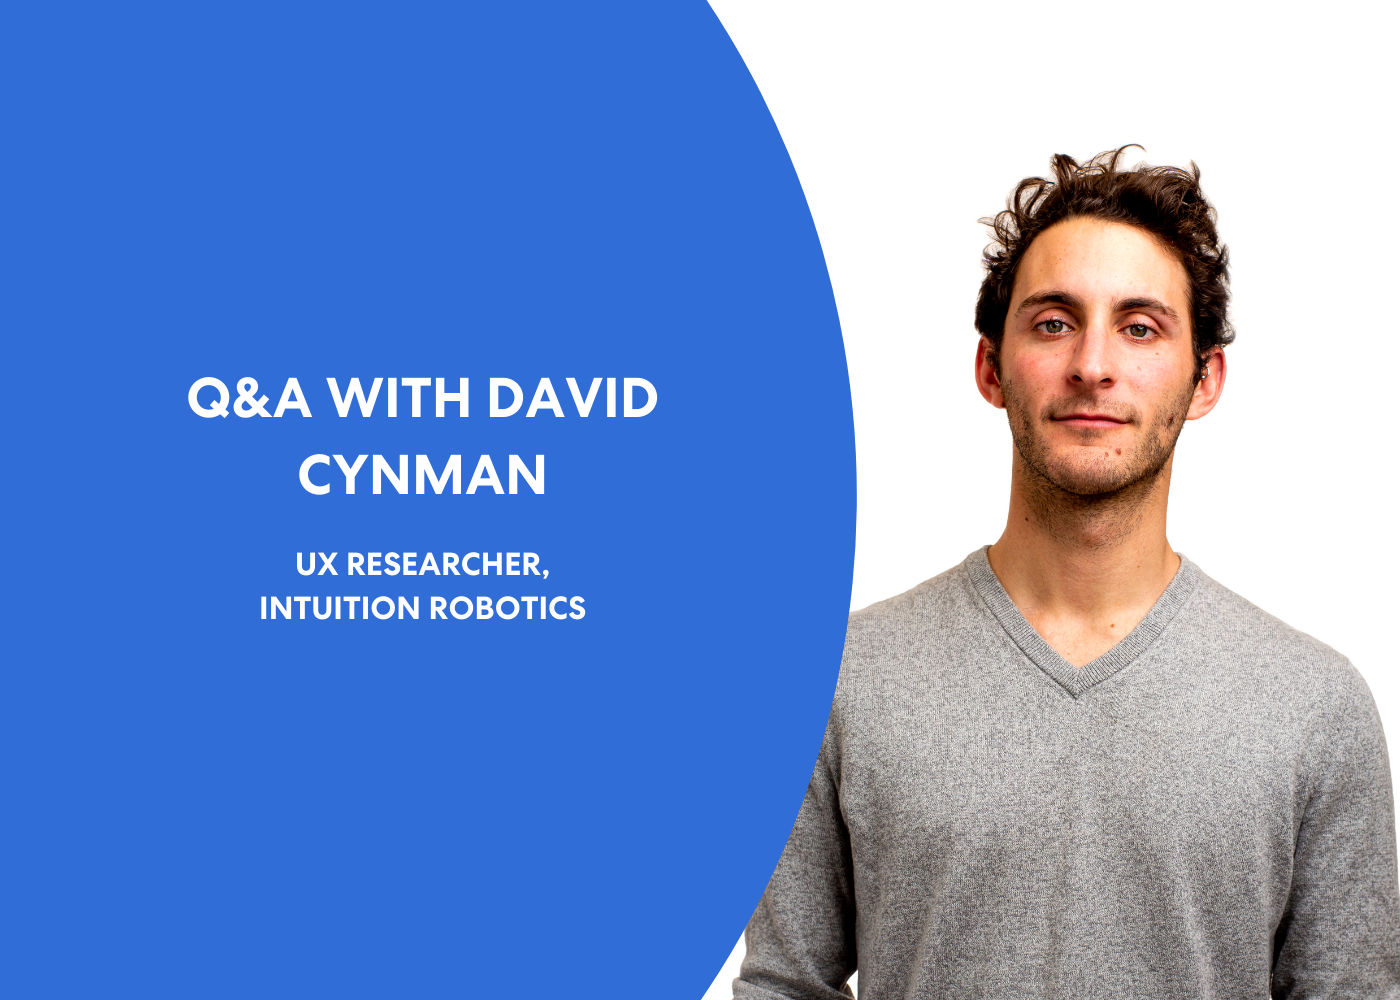 Get to Know David Cynman, UX Researcher at Intuition Robotics